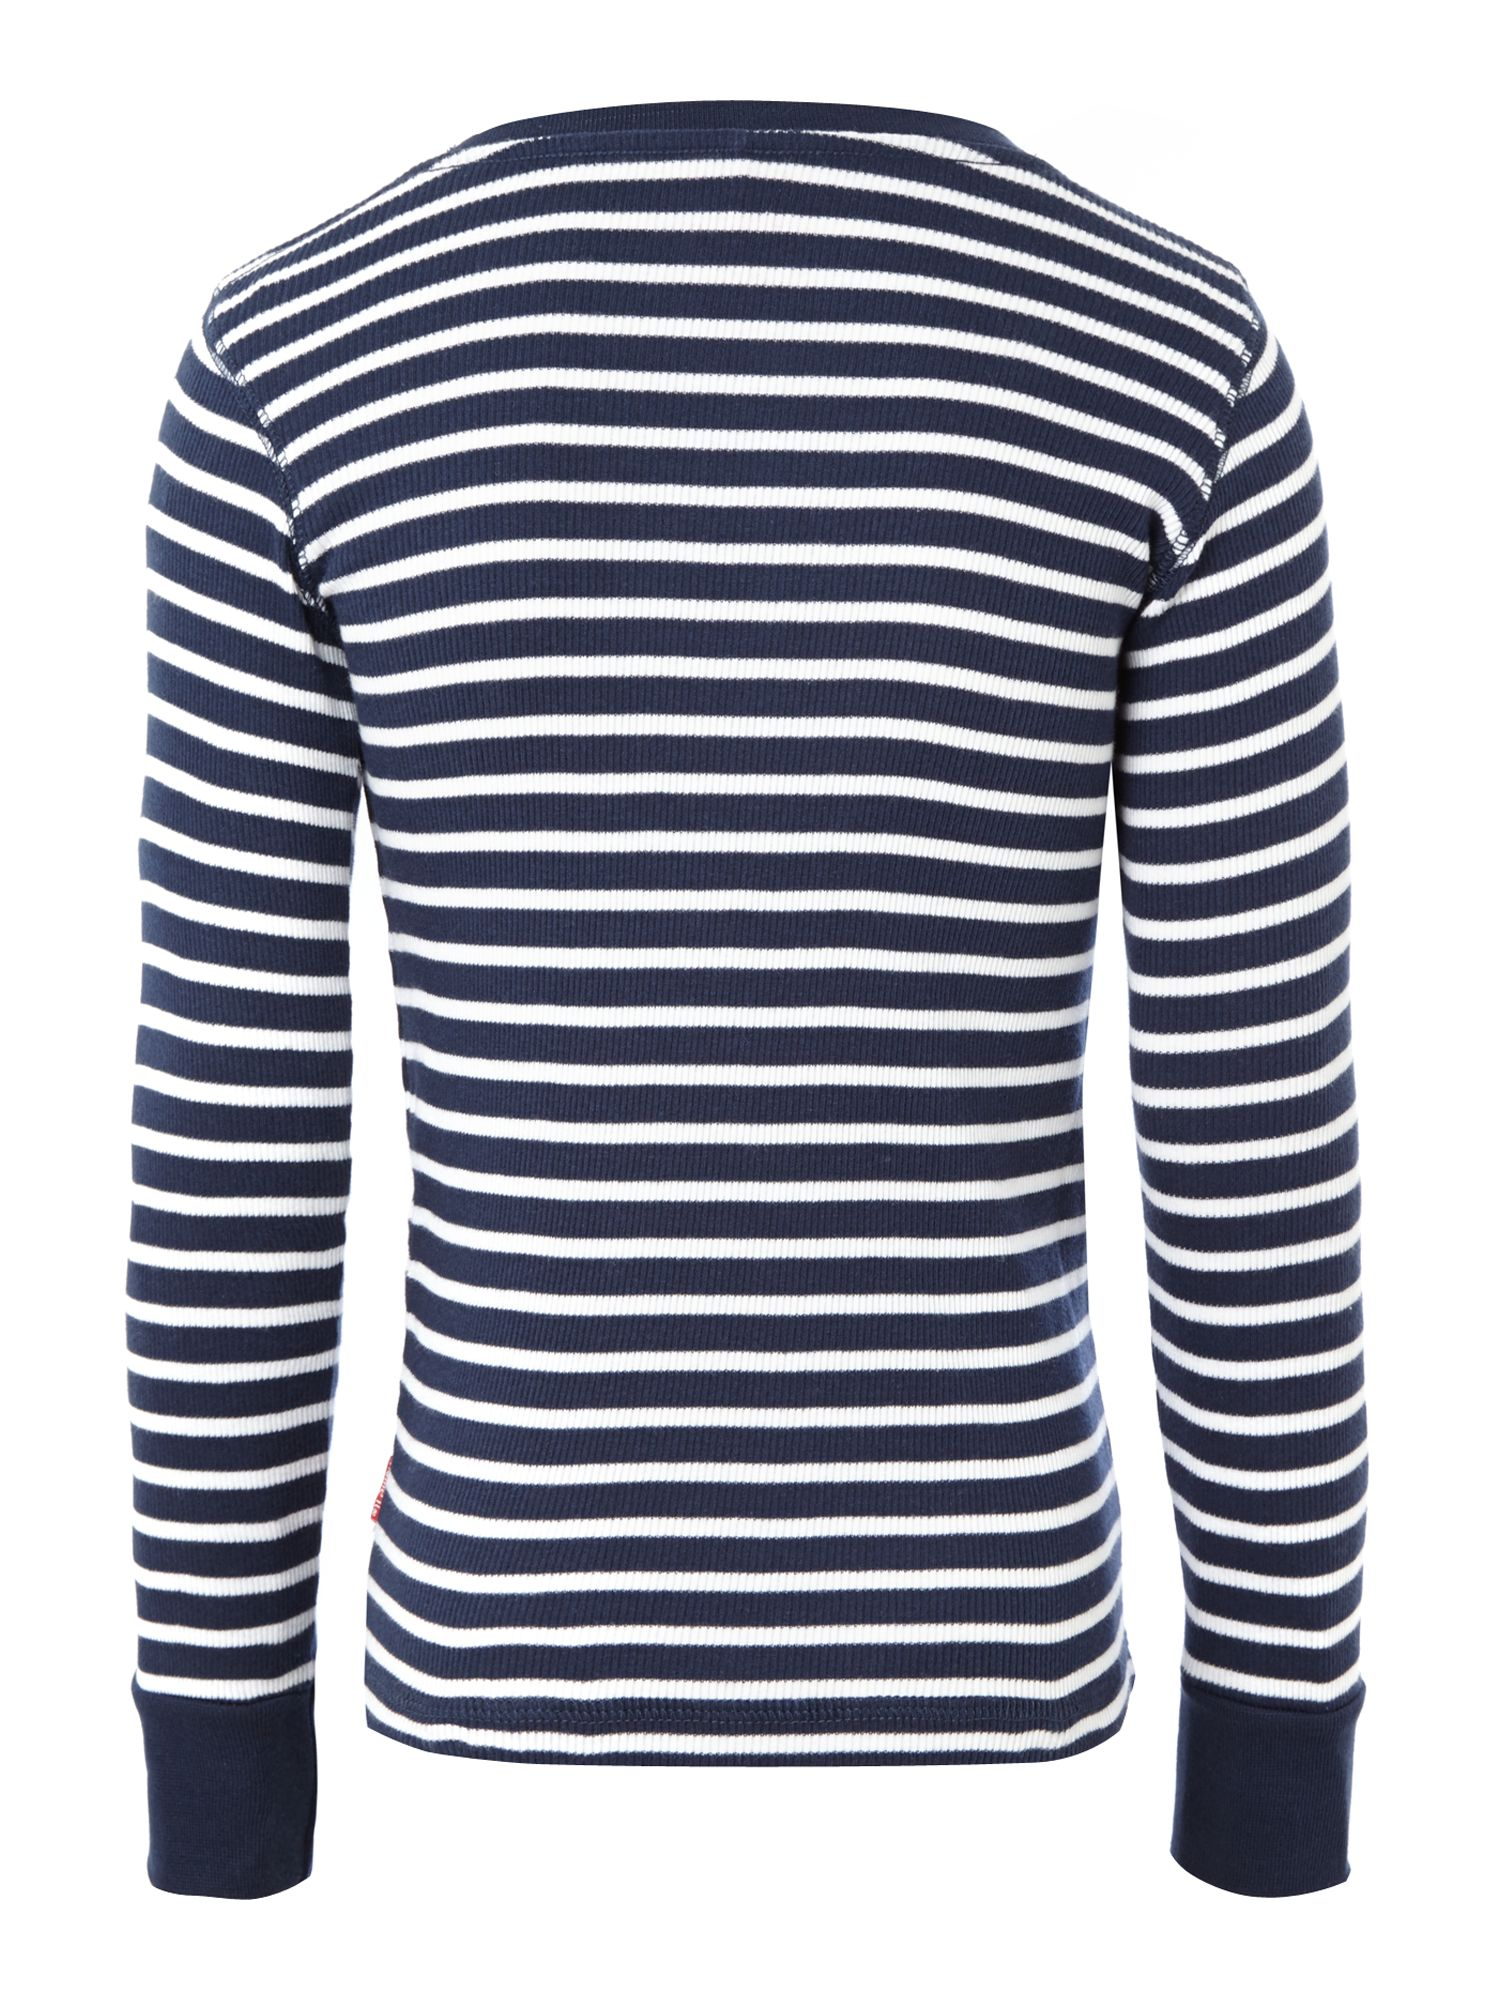 Boys stripe t-shirt